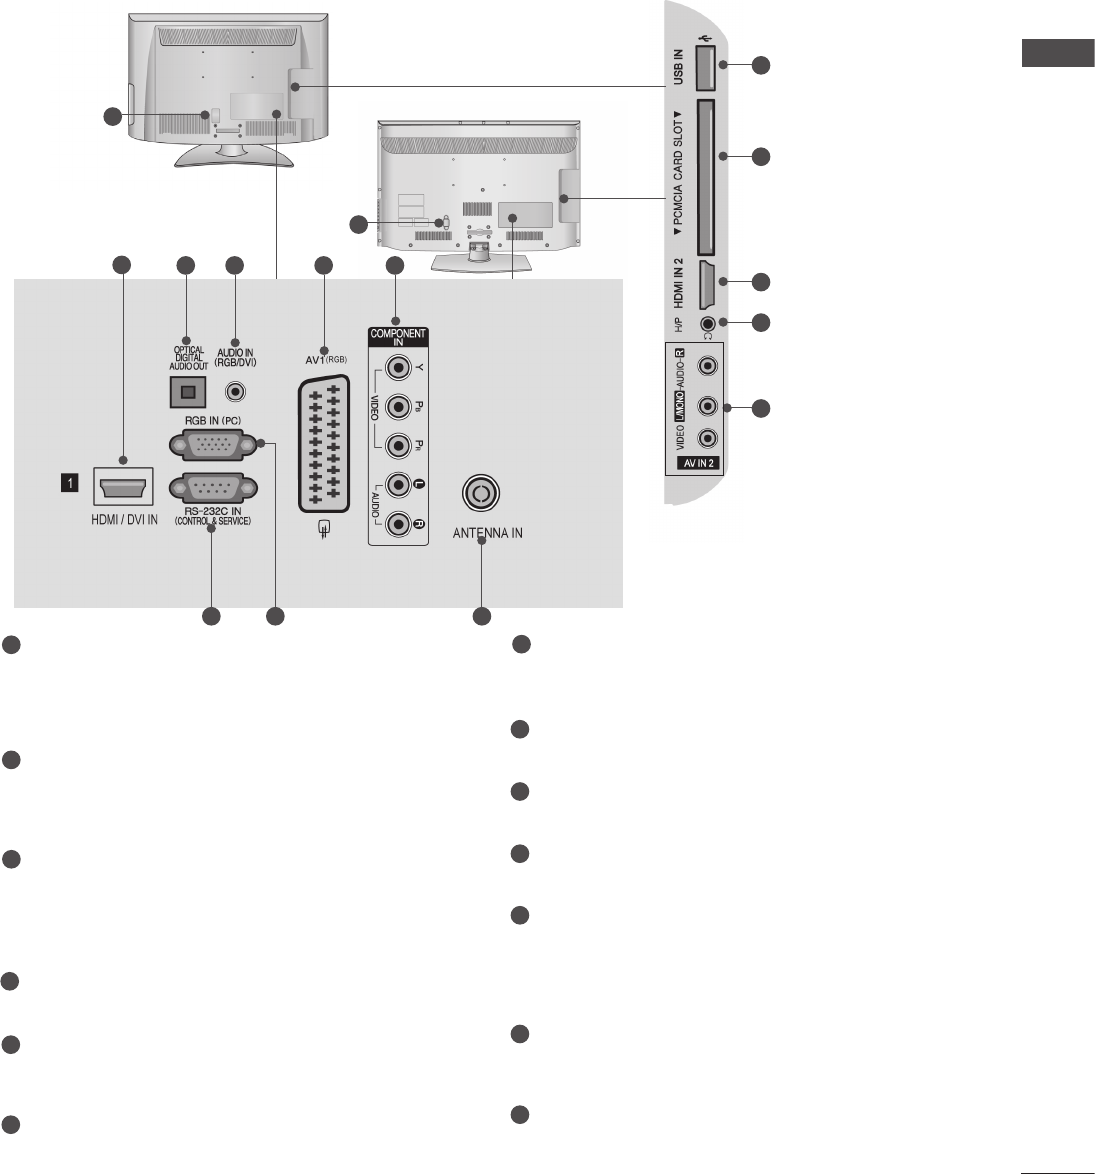 Lg 22le3300 Owner S Manual Speaker Circuit Diagram Likewise Rgb Led Lifier On 4 Channel A 17